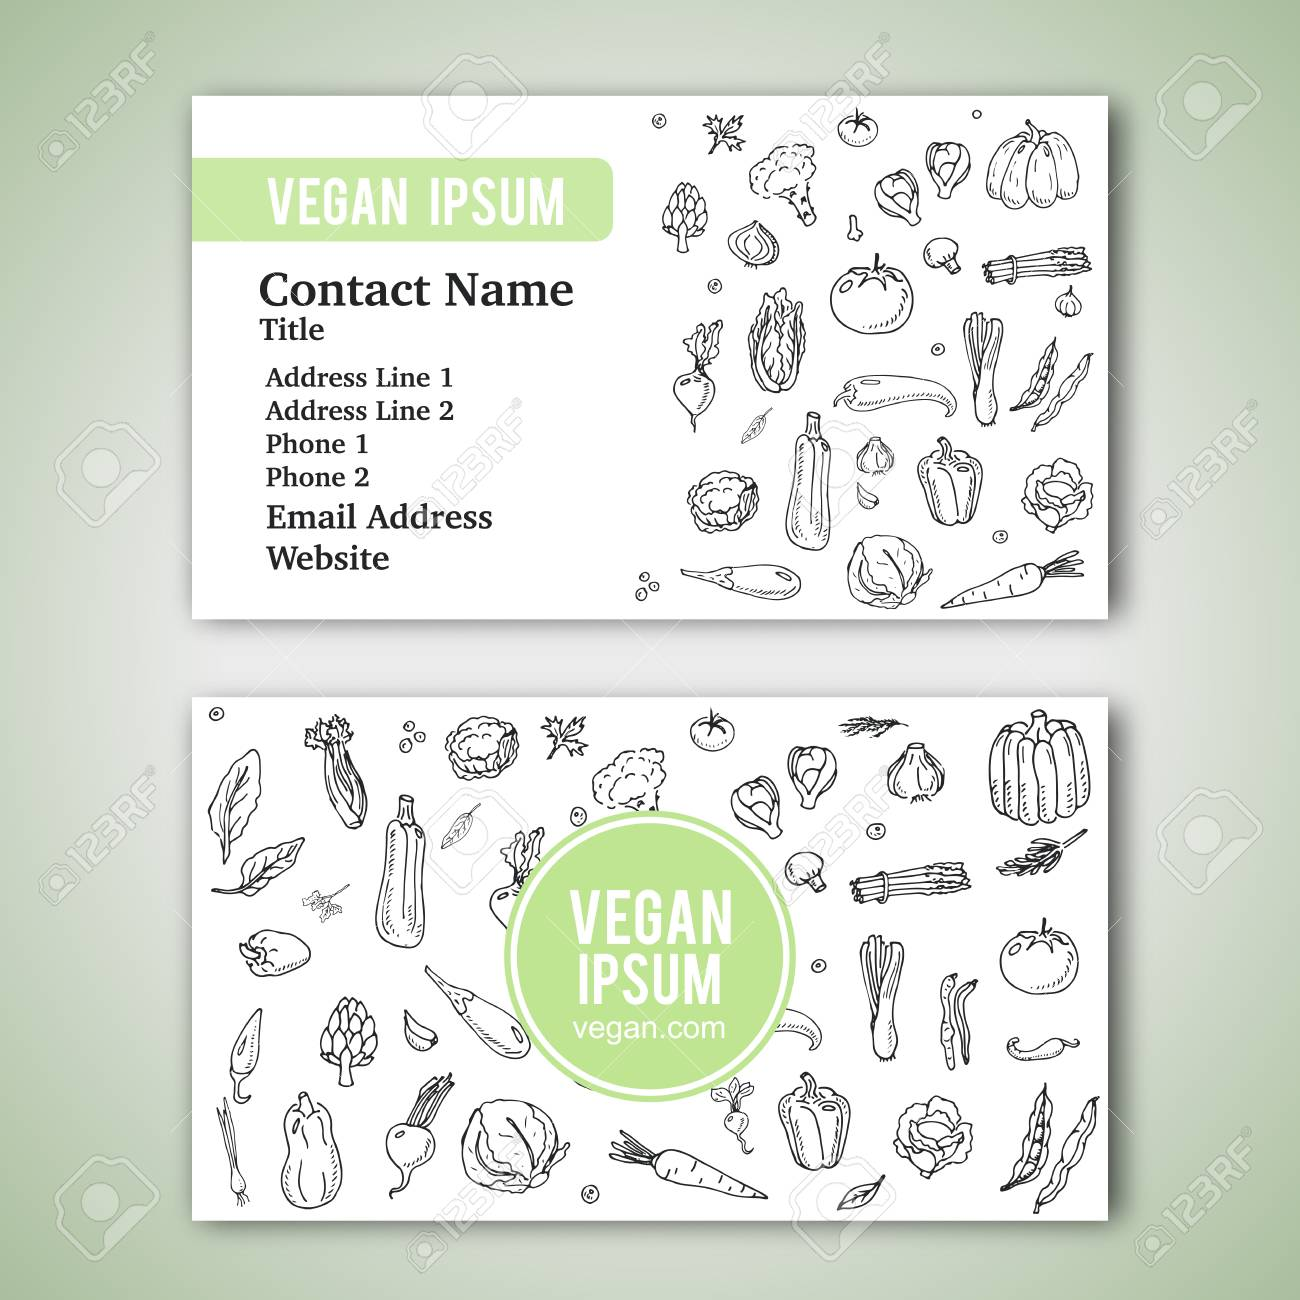 Cartes De Visite Modele Avec Main Dessine Legumes Doodle Icones Pour Boutique Vegetalien Ou Restaurant Vector Illustration Cartoon Differents Types